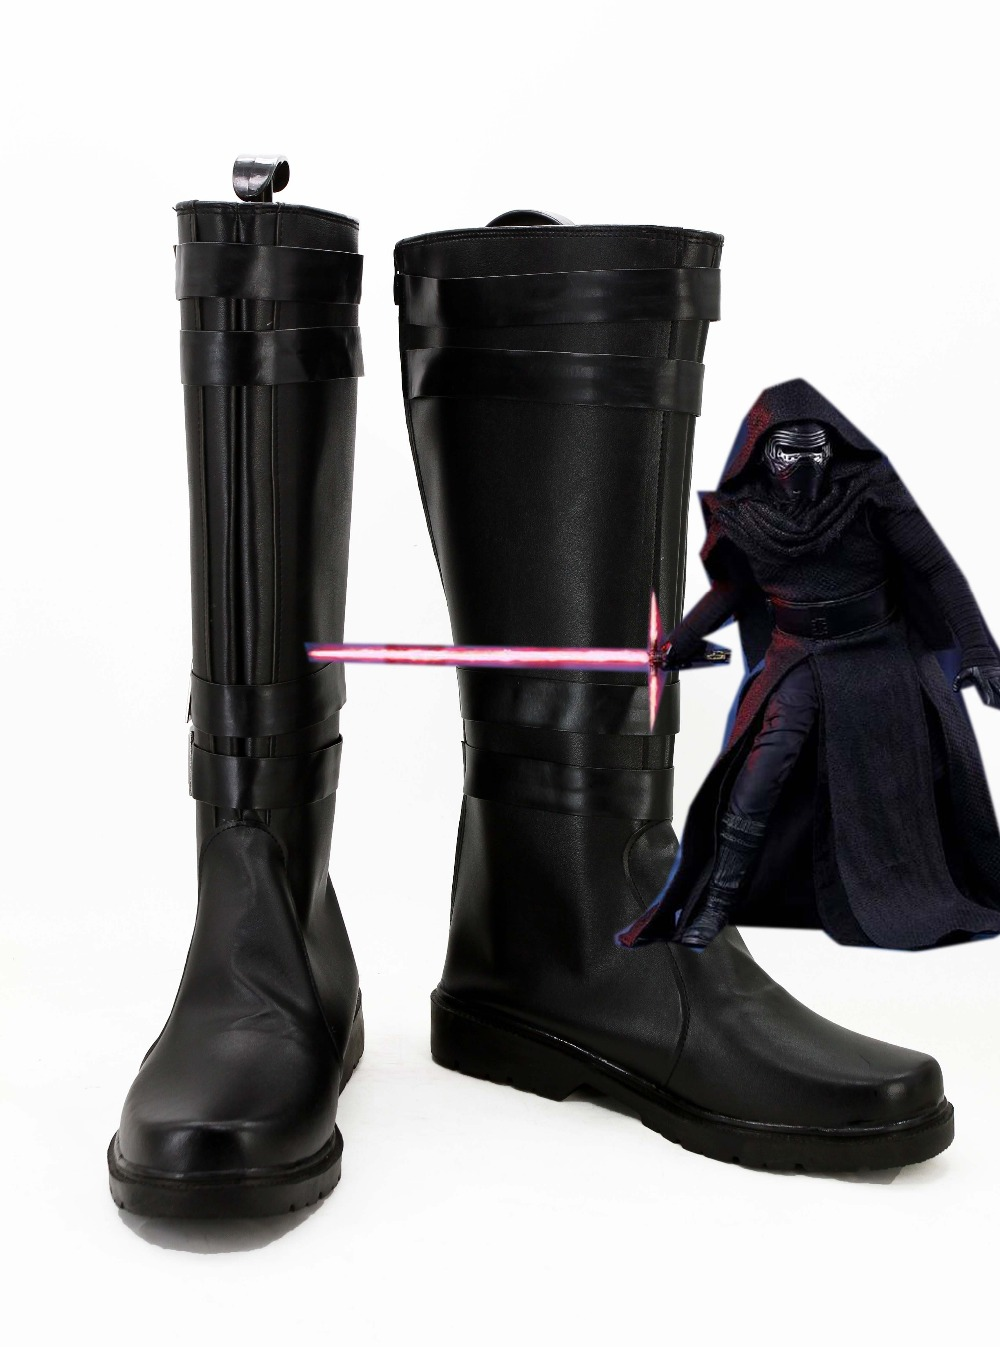 Star Wars 7: The Force Awakens Kylo Ren Boots Shoes Cosplay Costume Custom Made